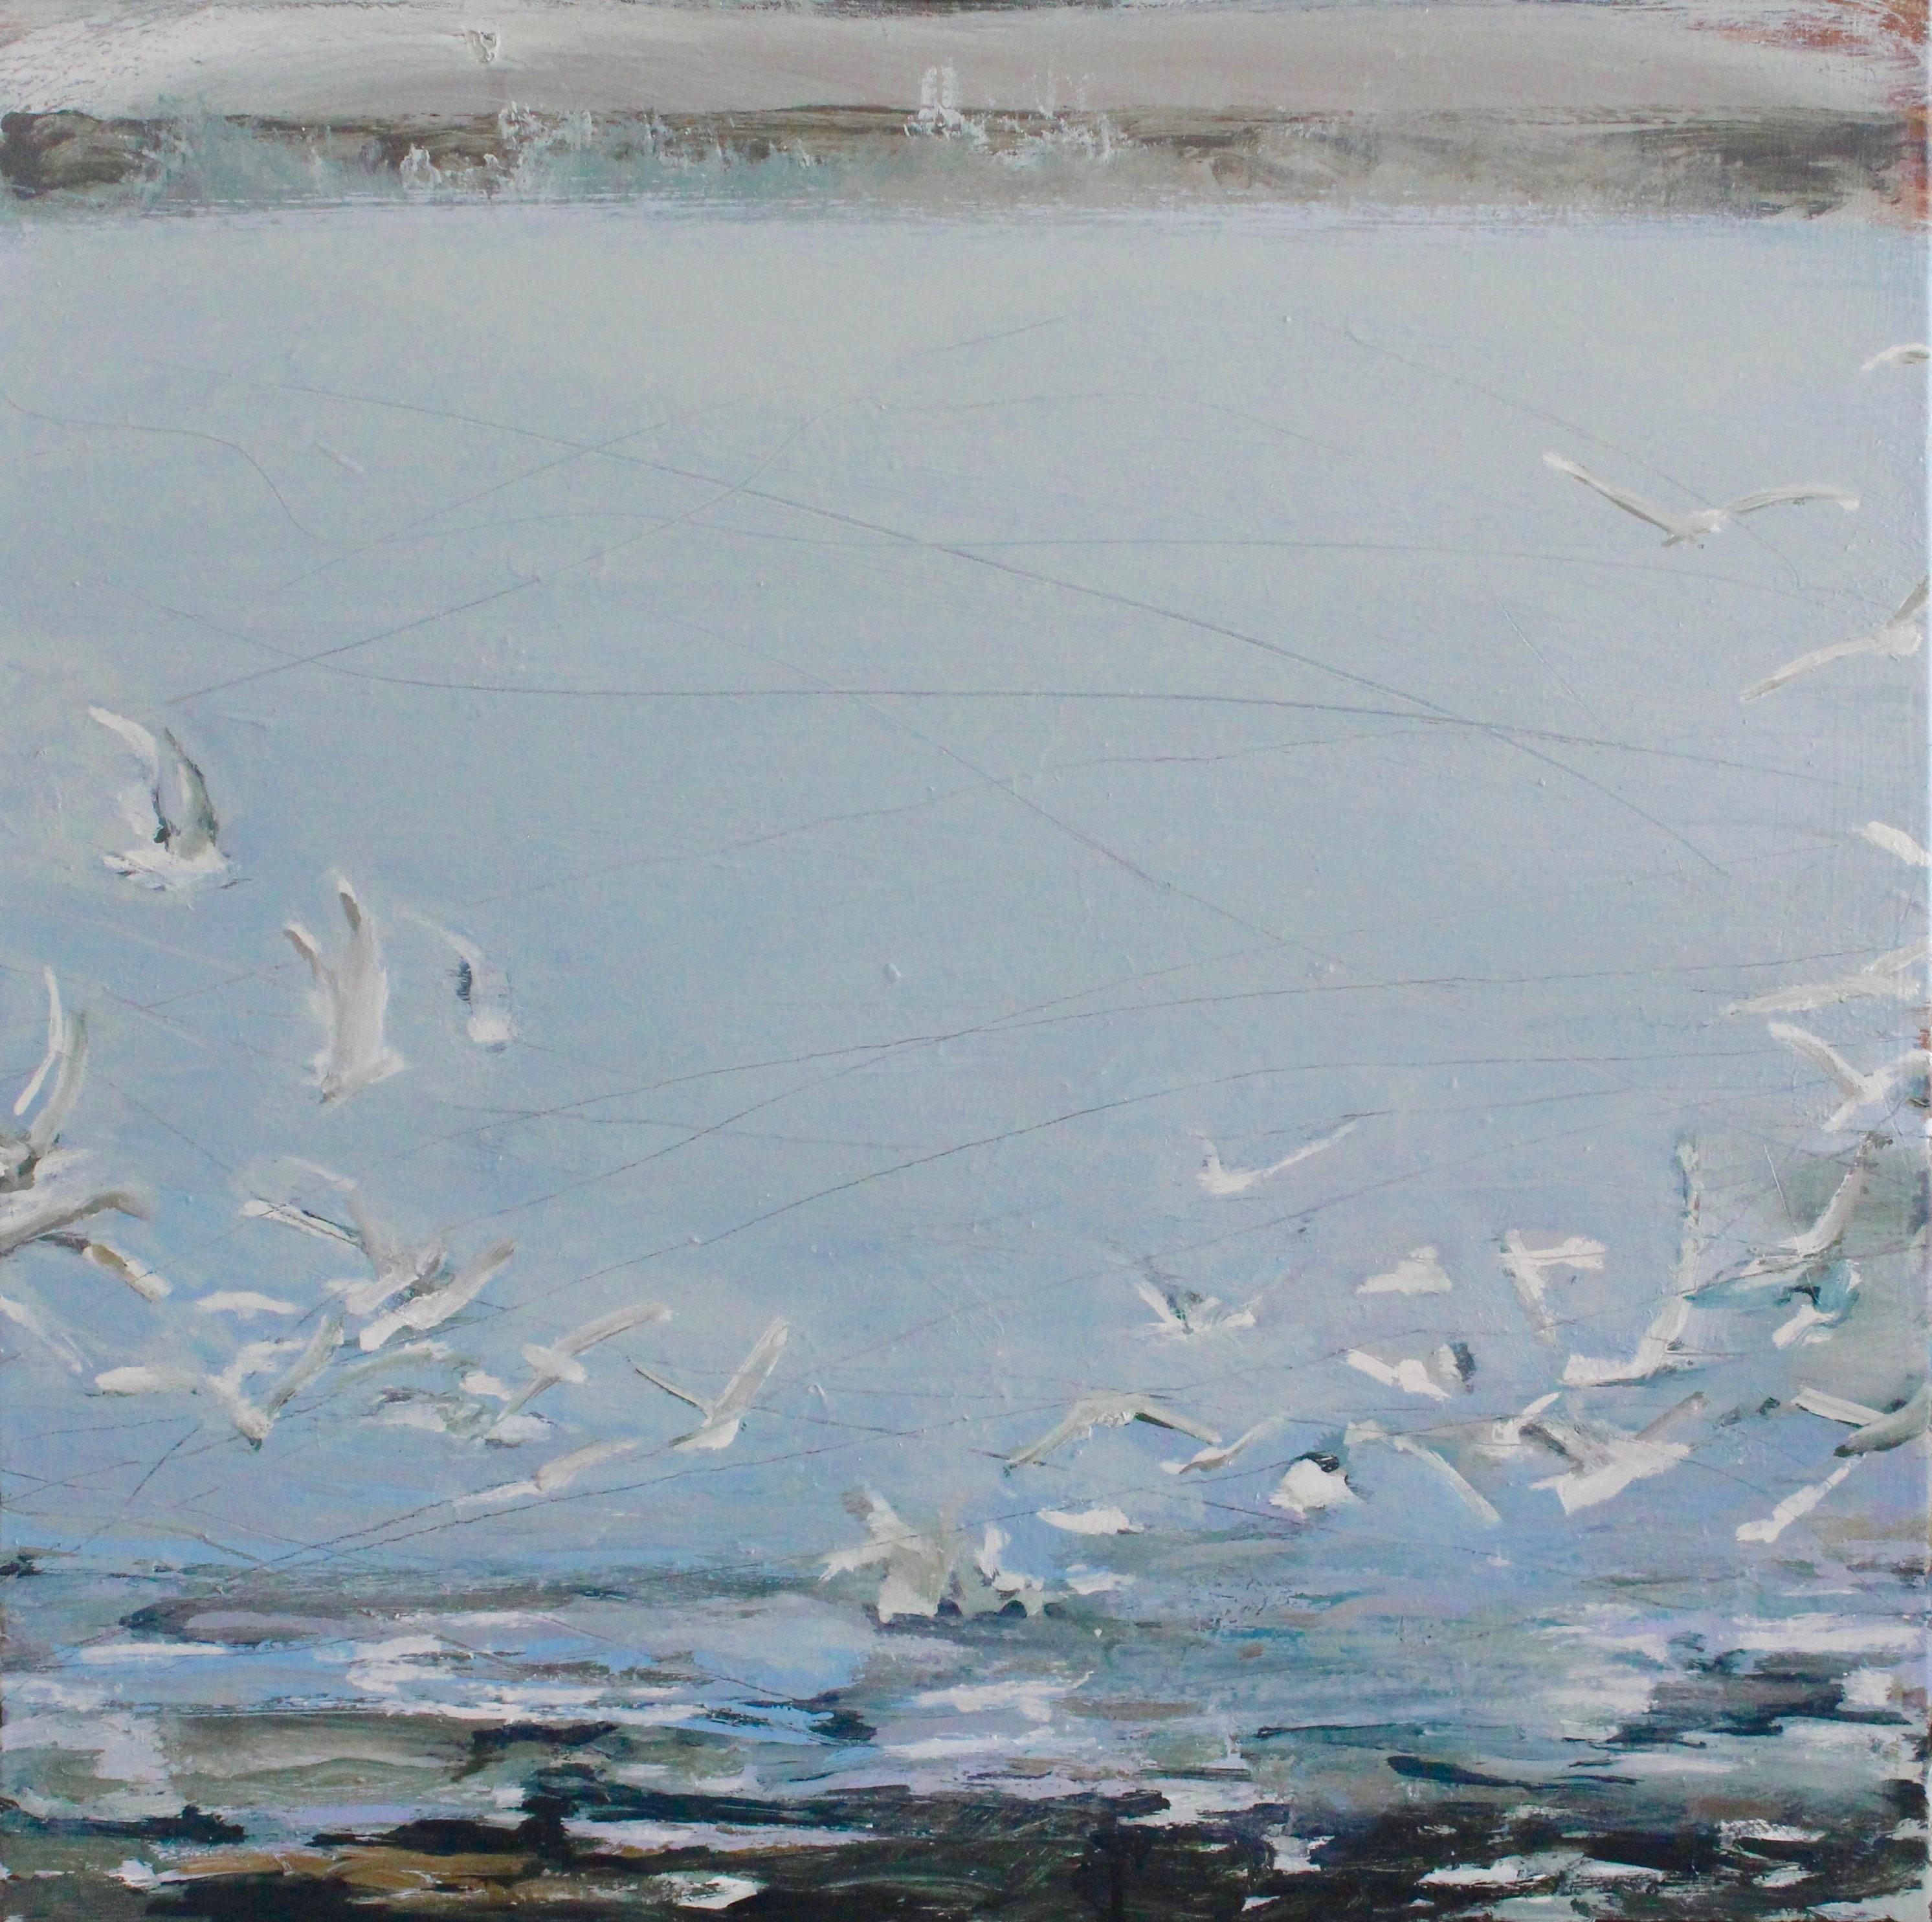 Incoming Tide: Oil Painting by Royal West Academician of Estuary and Gulls